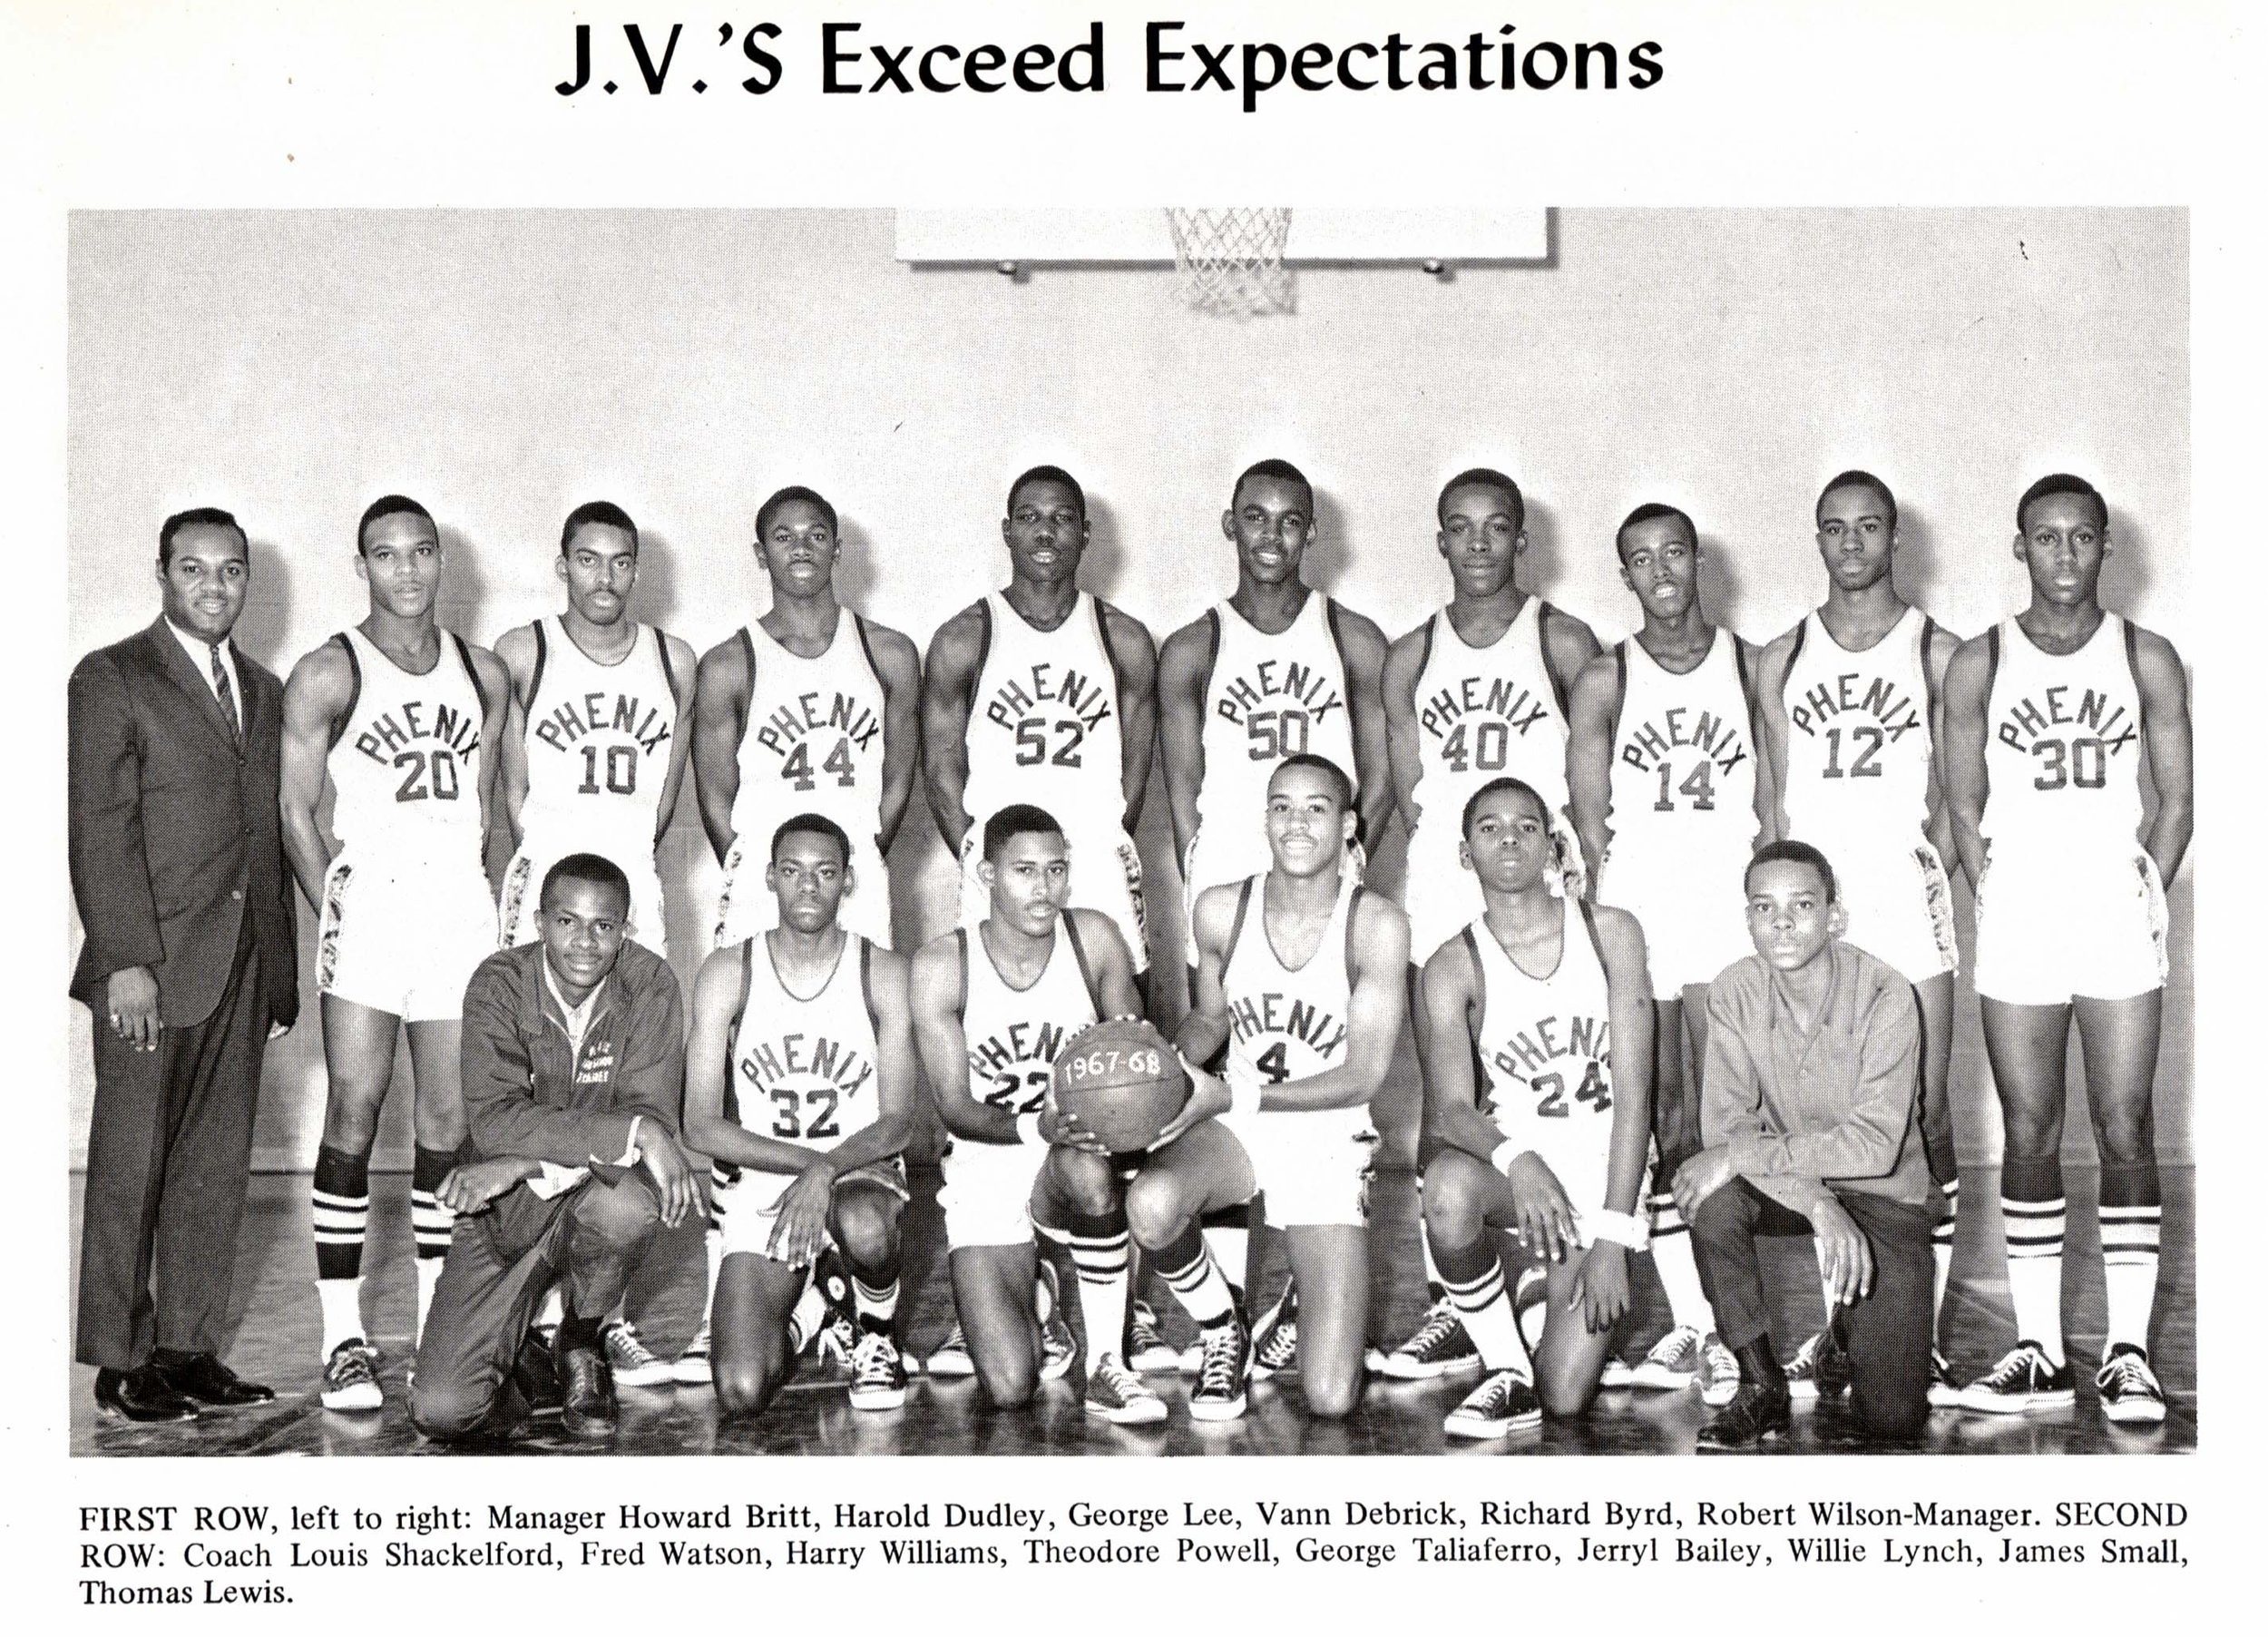 J.V. Basketball Team, 1968